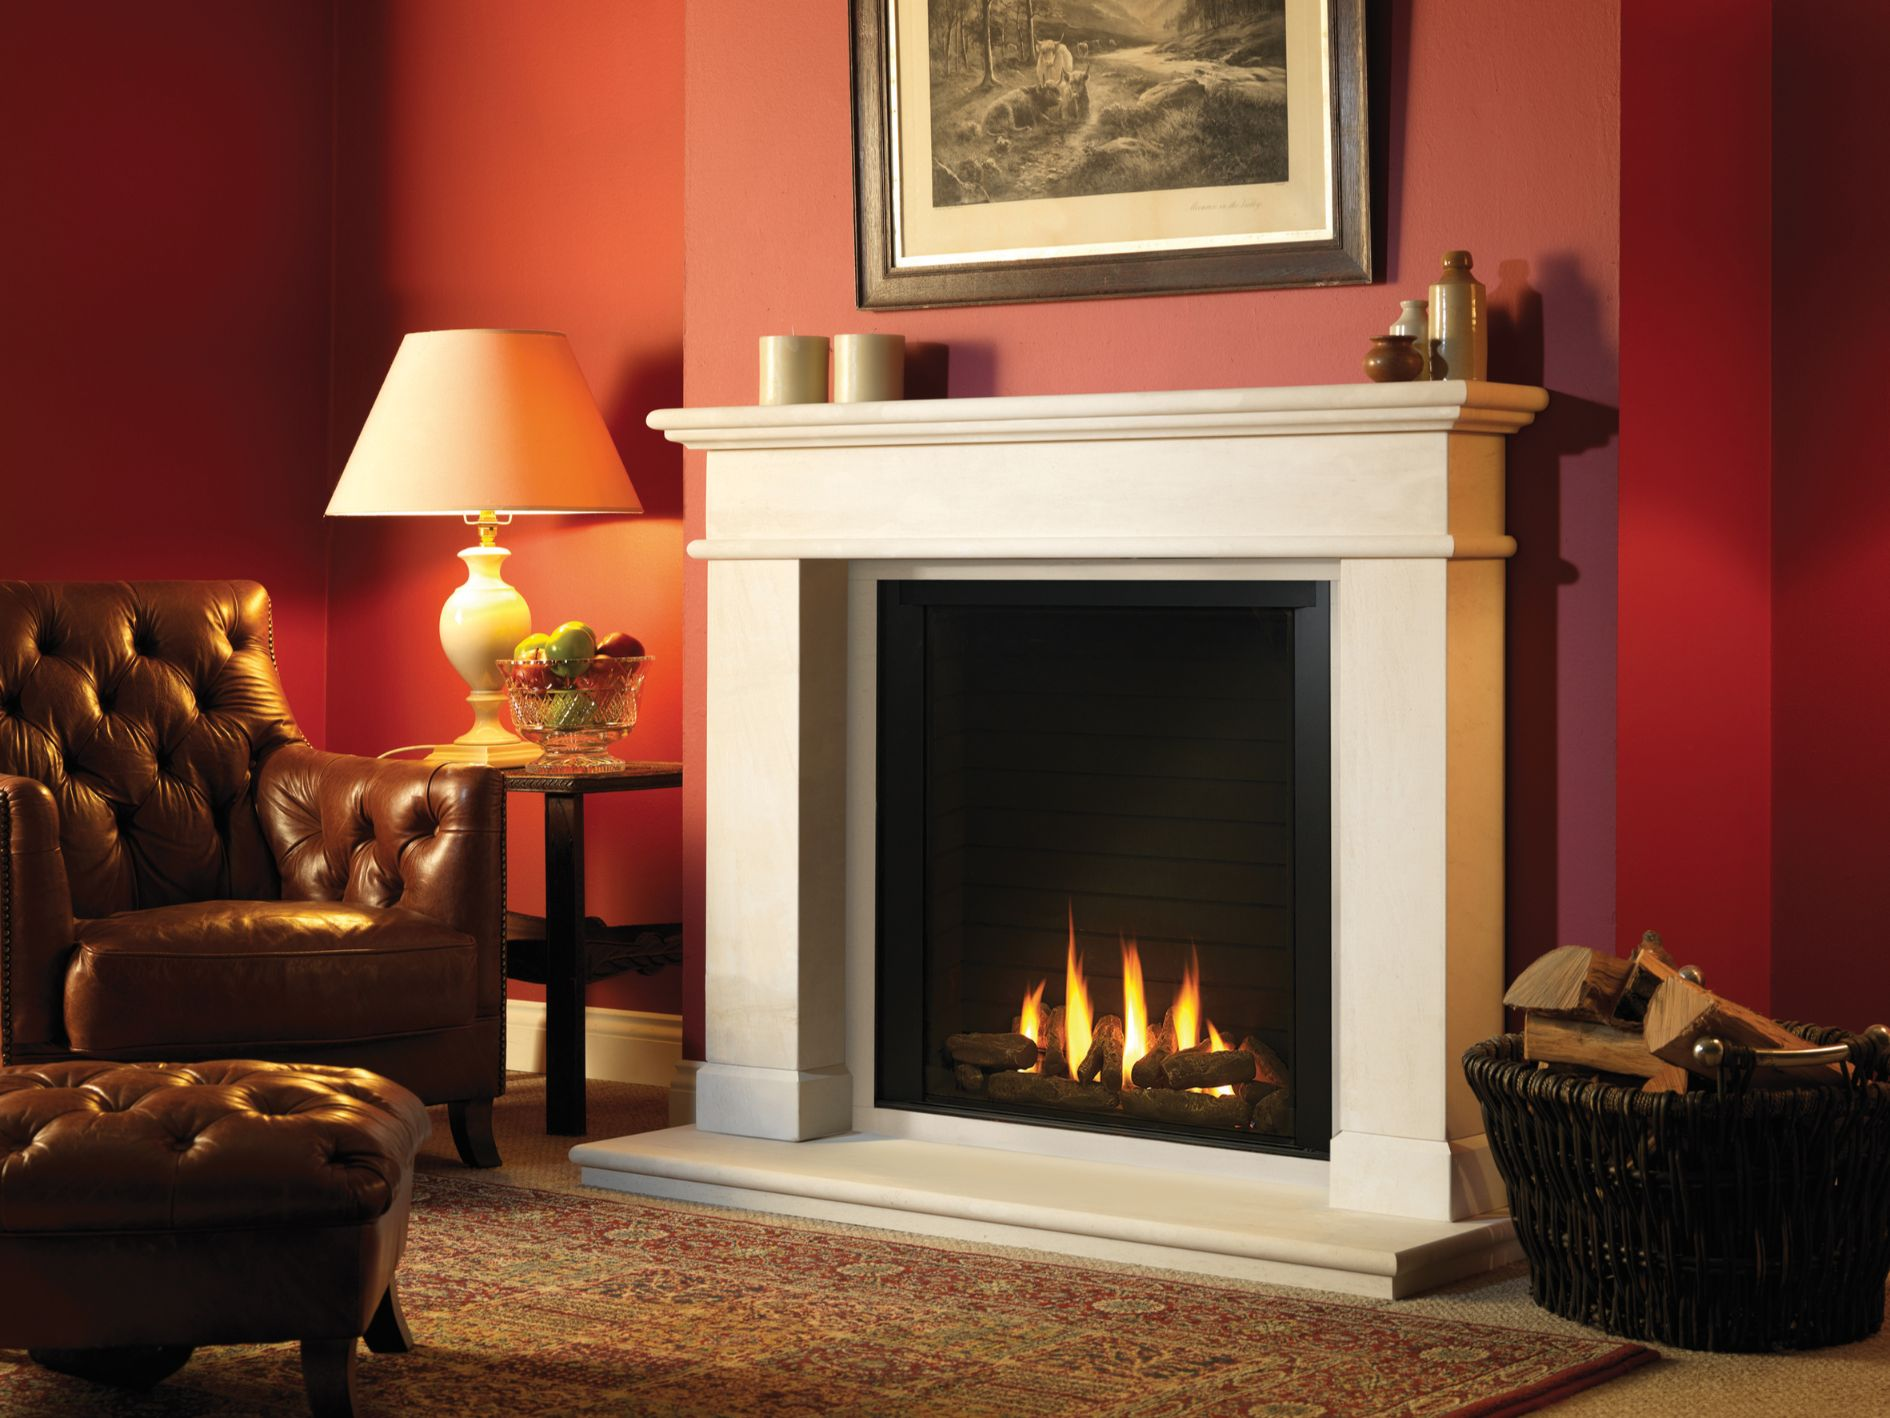 Paragon P9 Gas Fire, Balmoral Gas Fireplace Suite